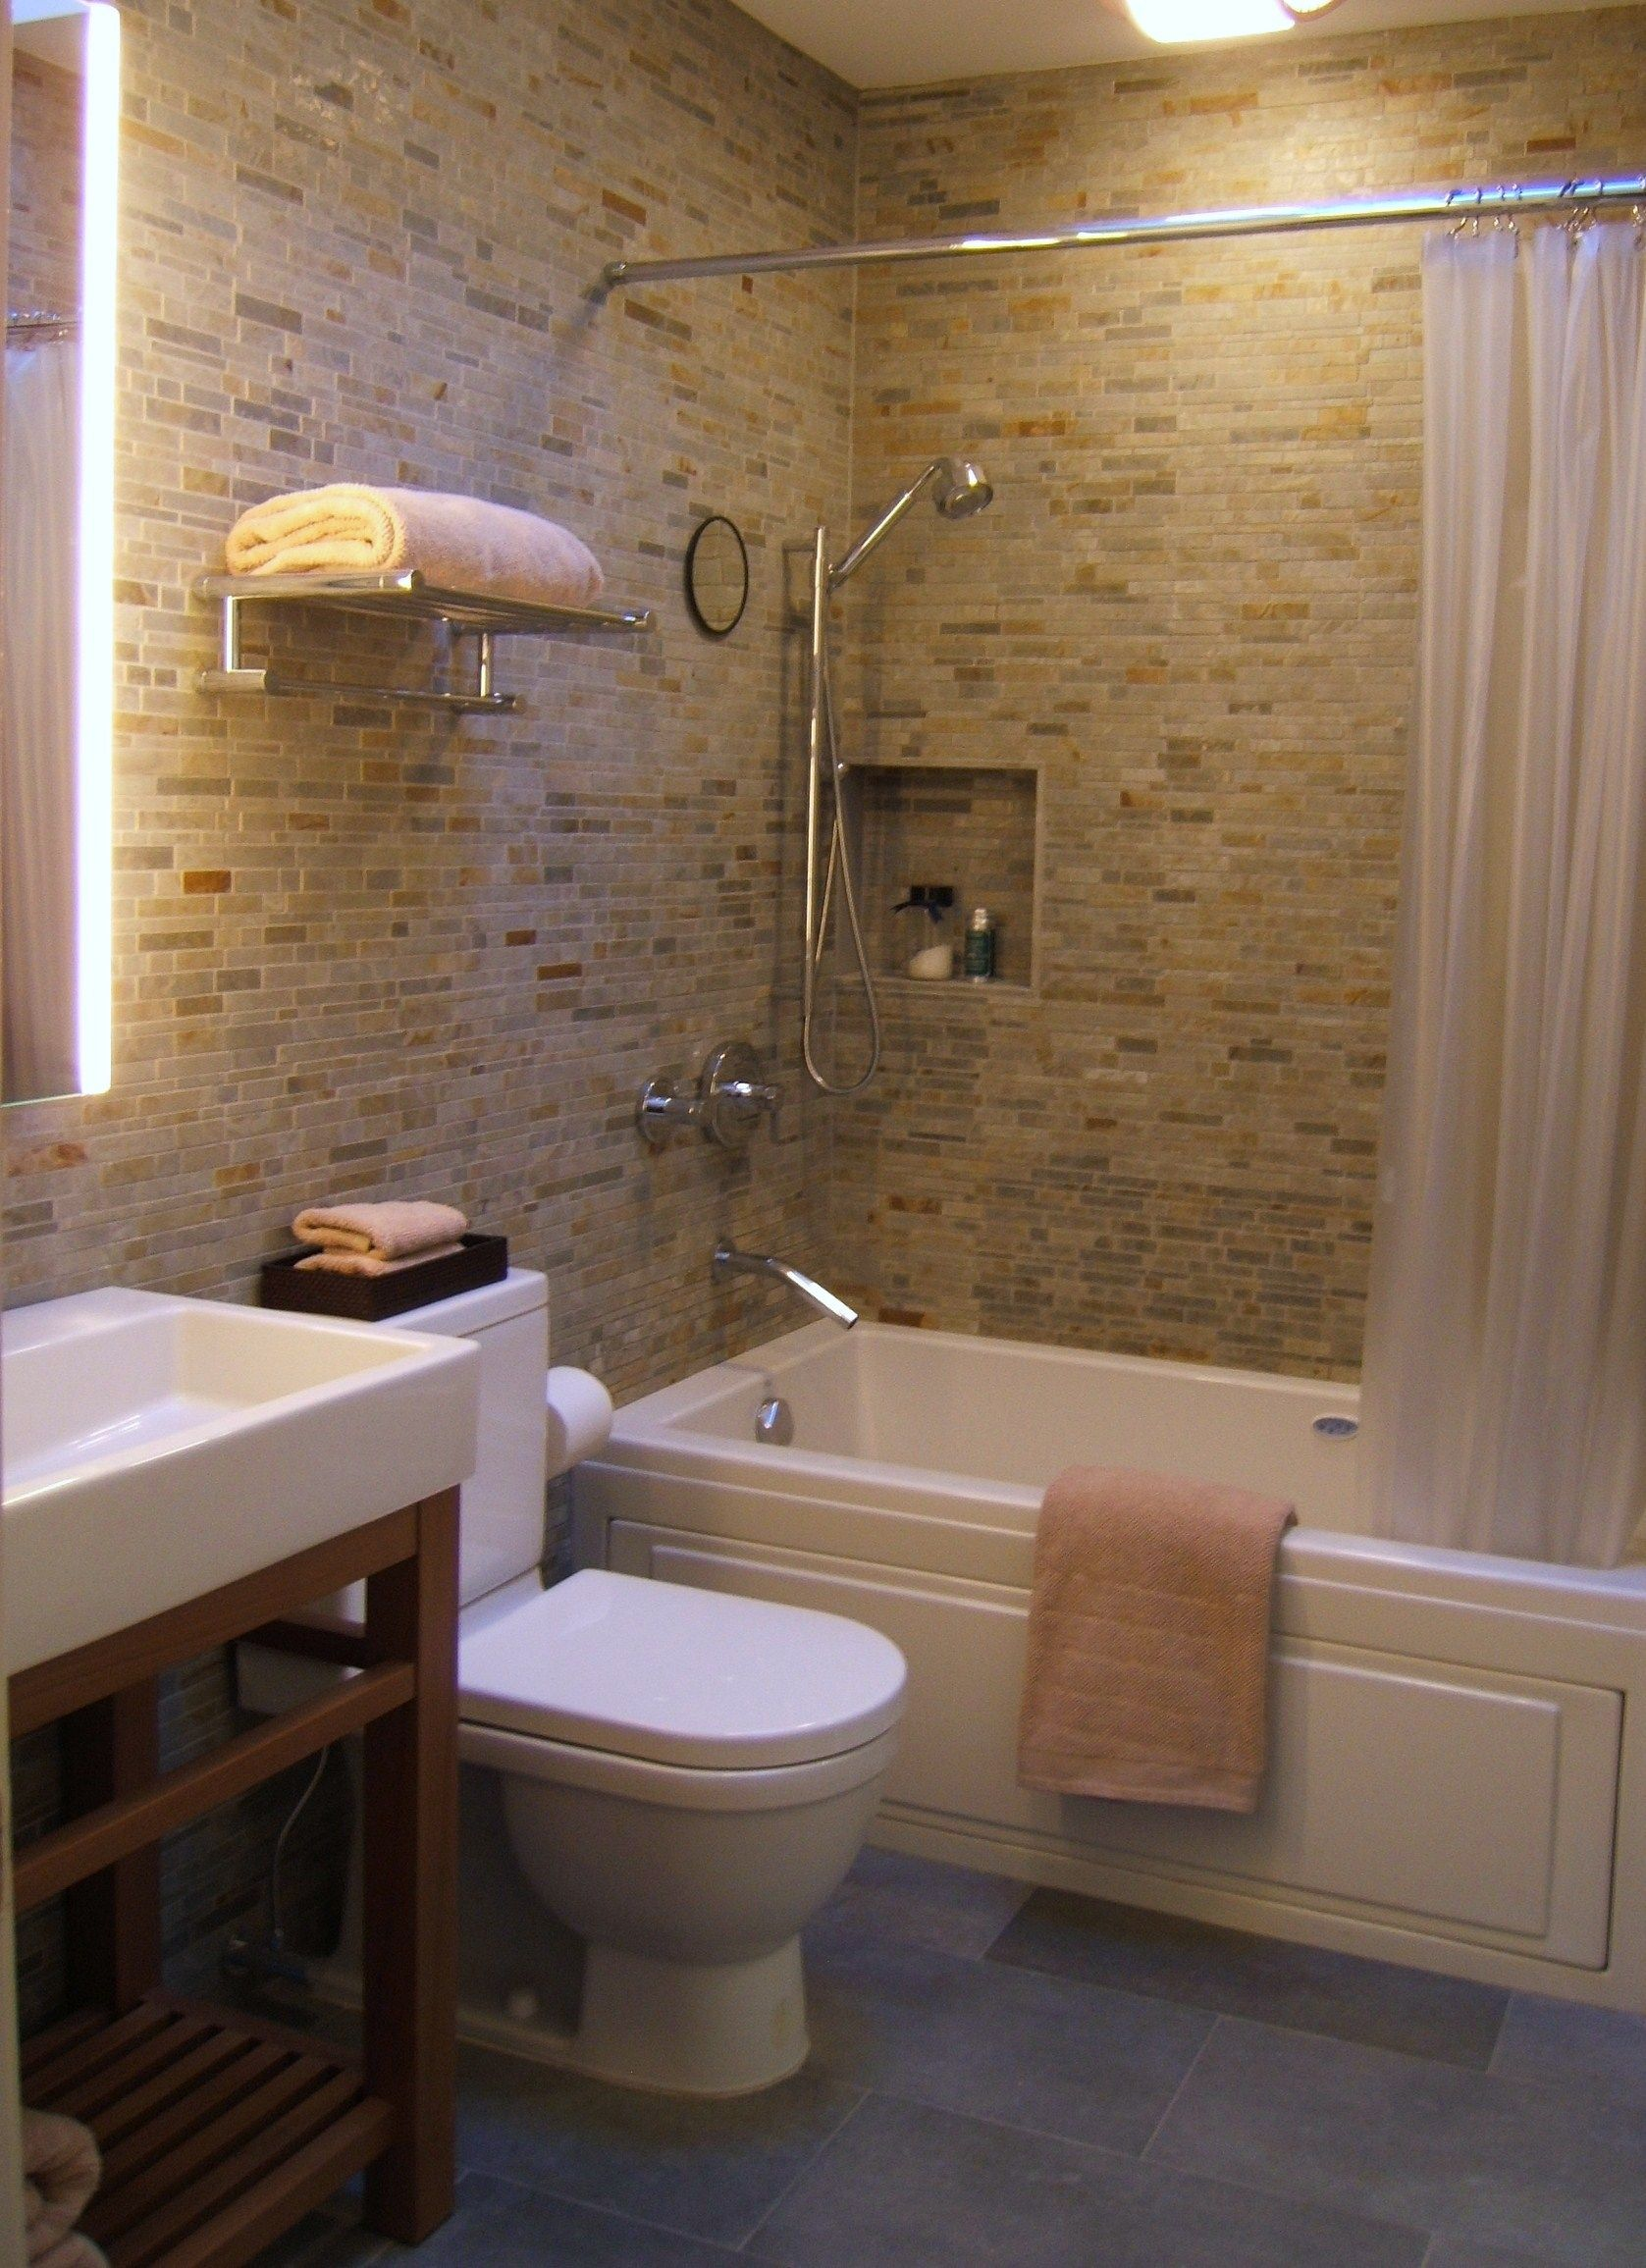 small bathroom designs south africa - Bathroom Design Houston